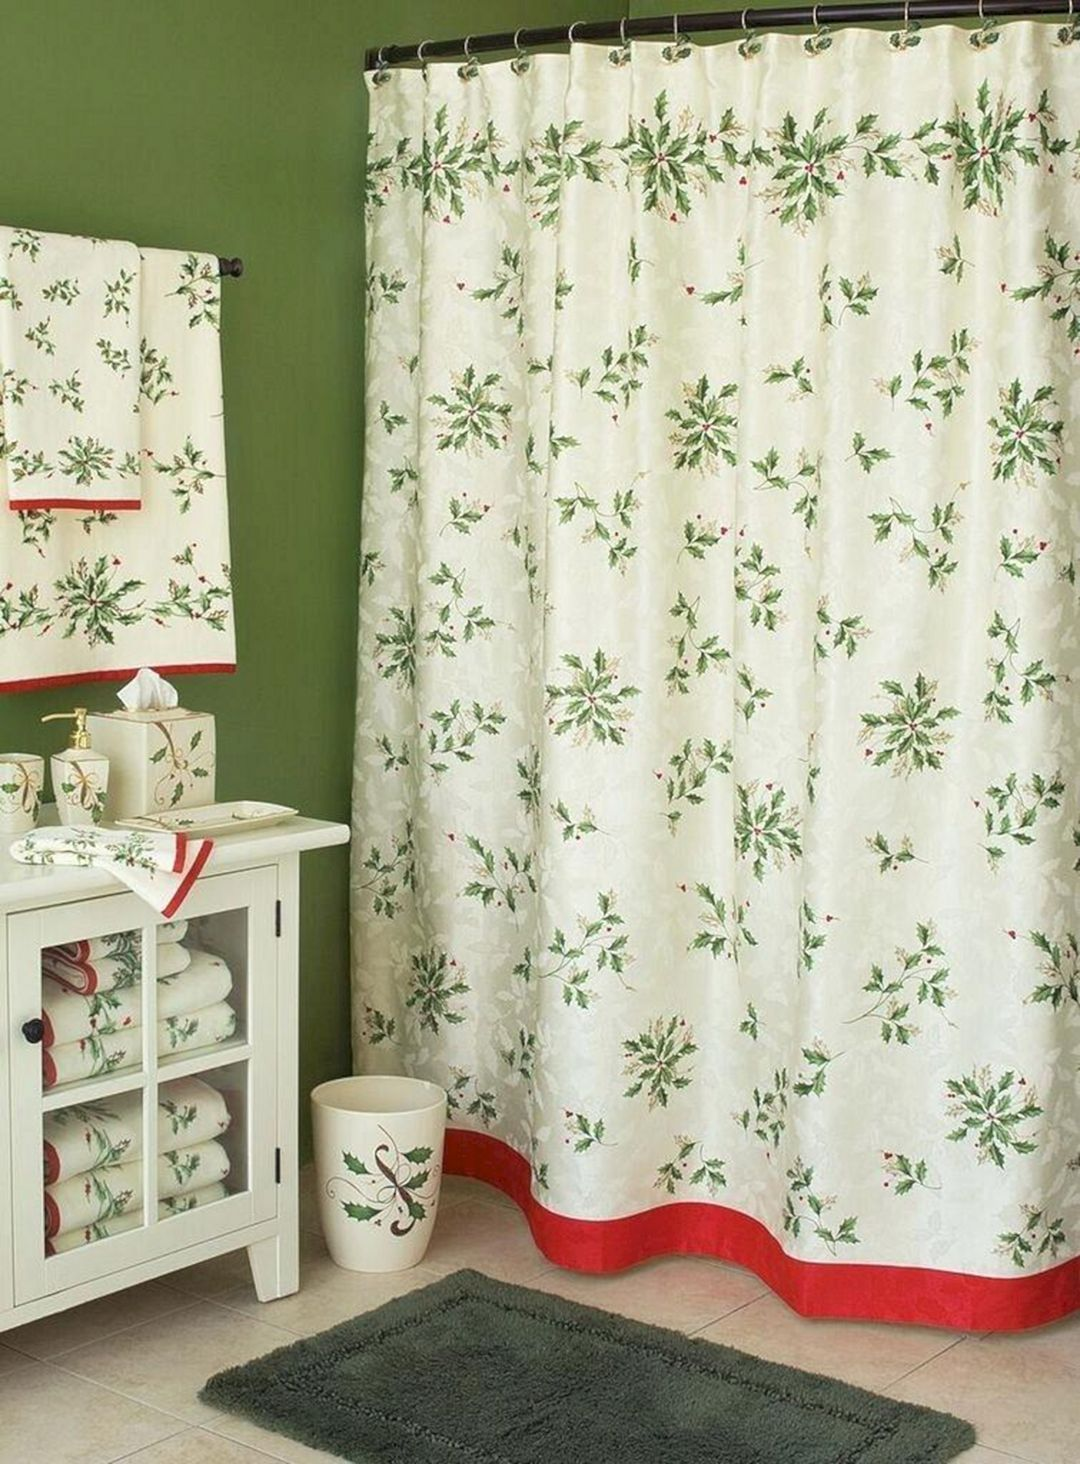 20 Most Popular Christmas Bathroom Design And Decor Ideas